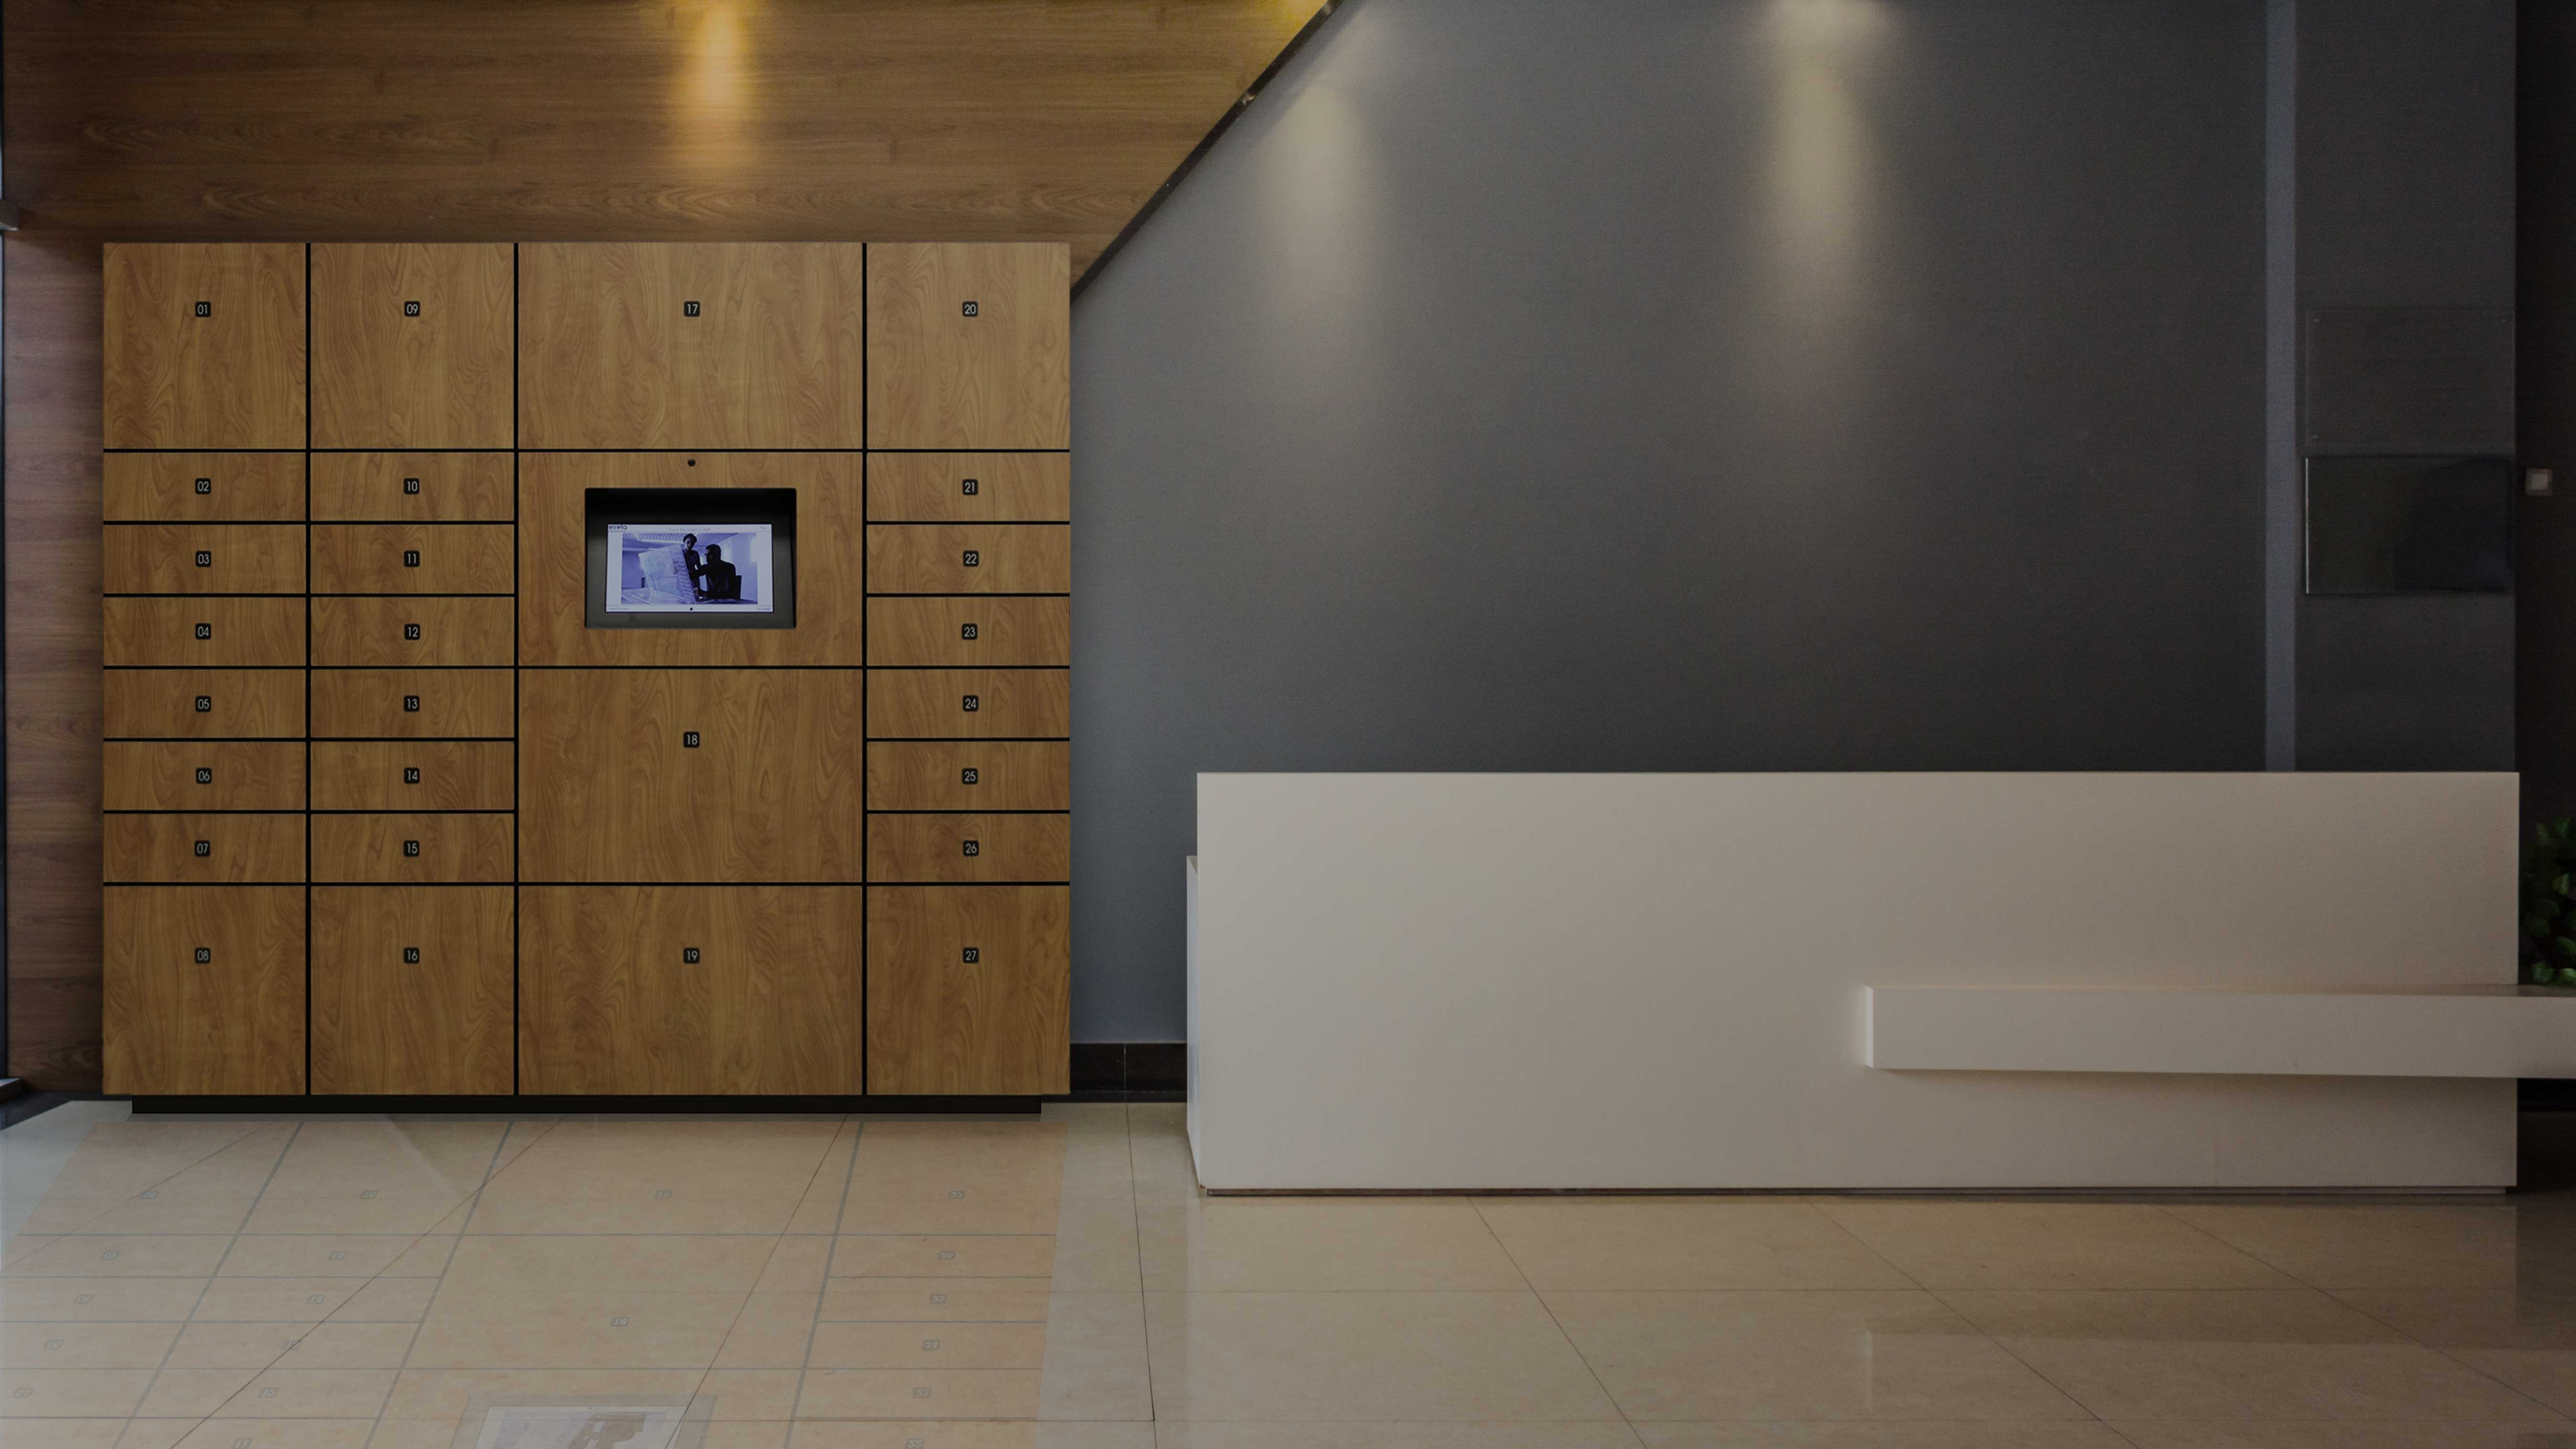 4 Ways Smart Lockers Improve Last Mile Delivery